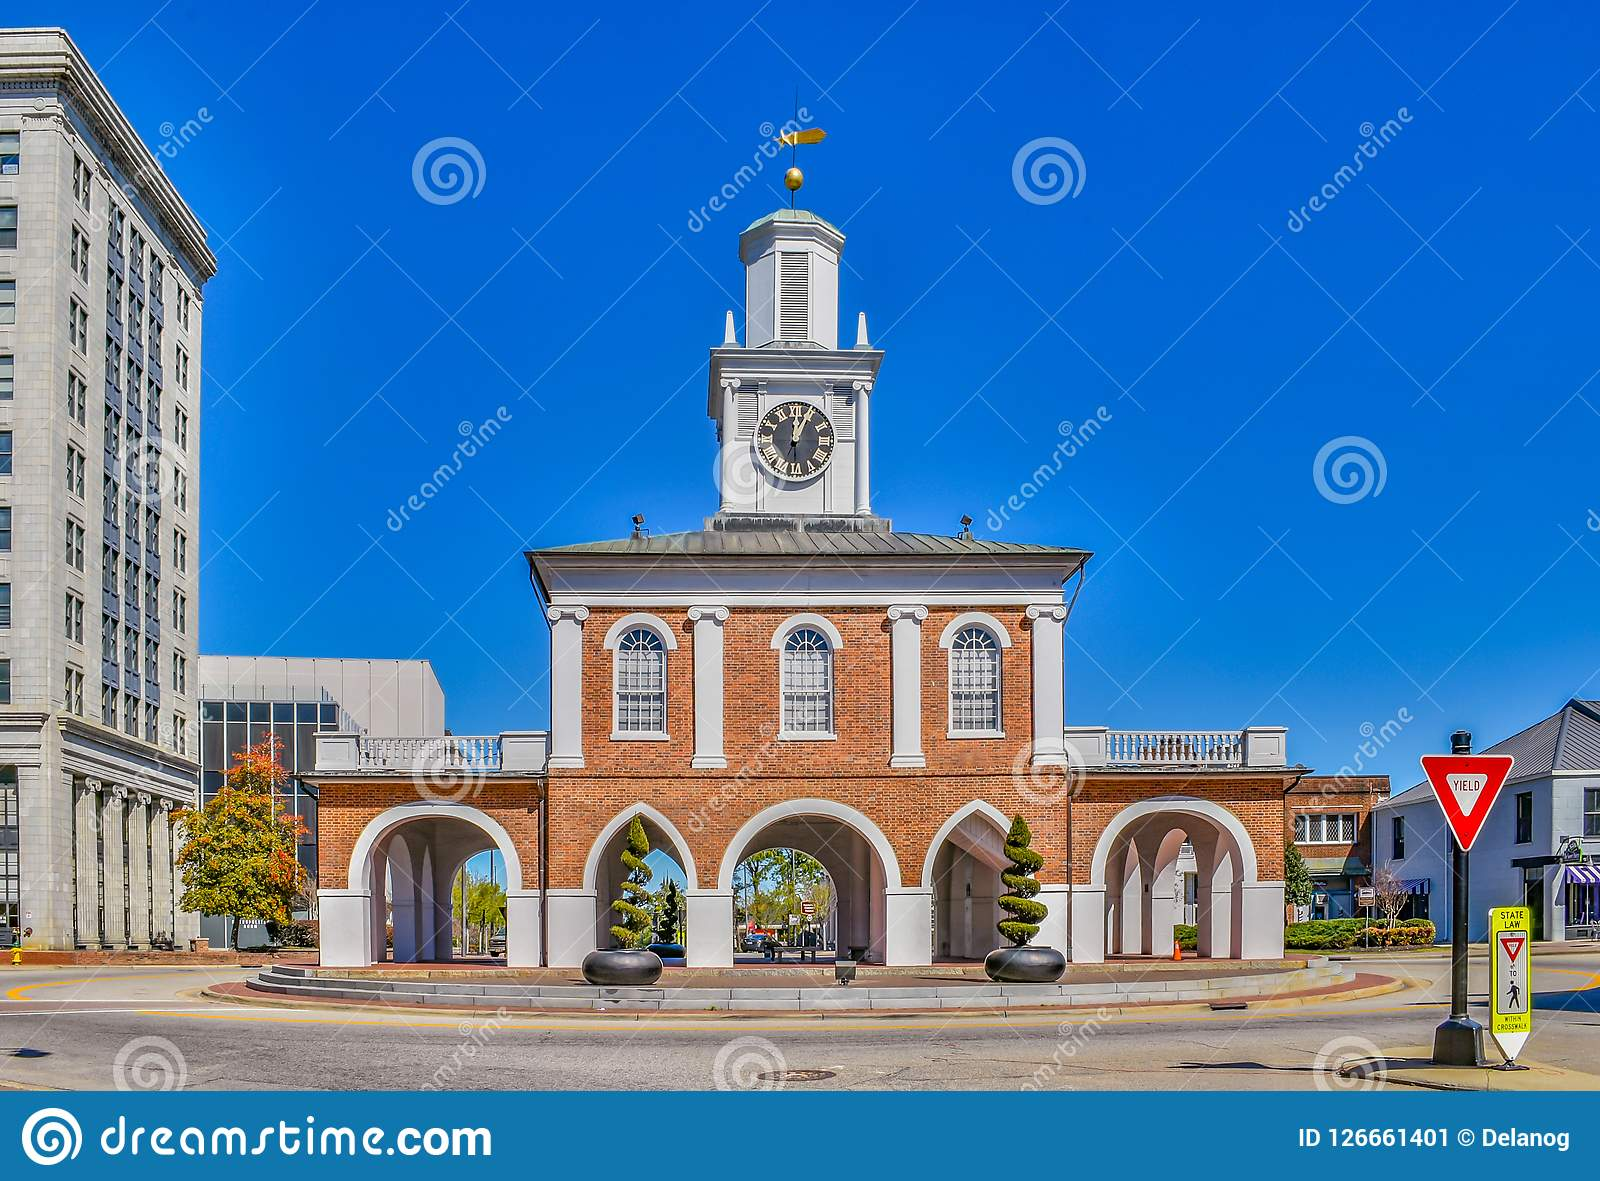 Fayetteville North Carolina Market House Stock Image - Image of